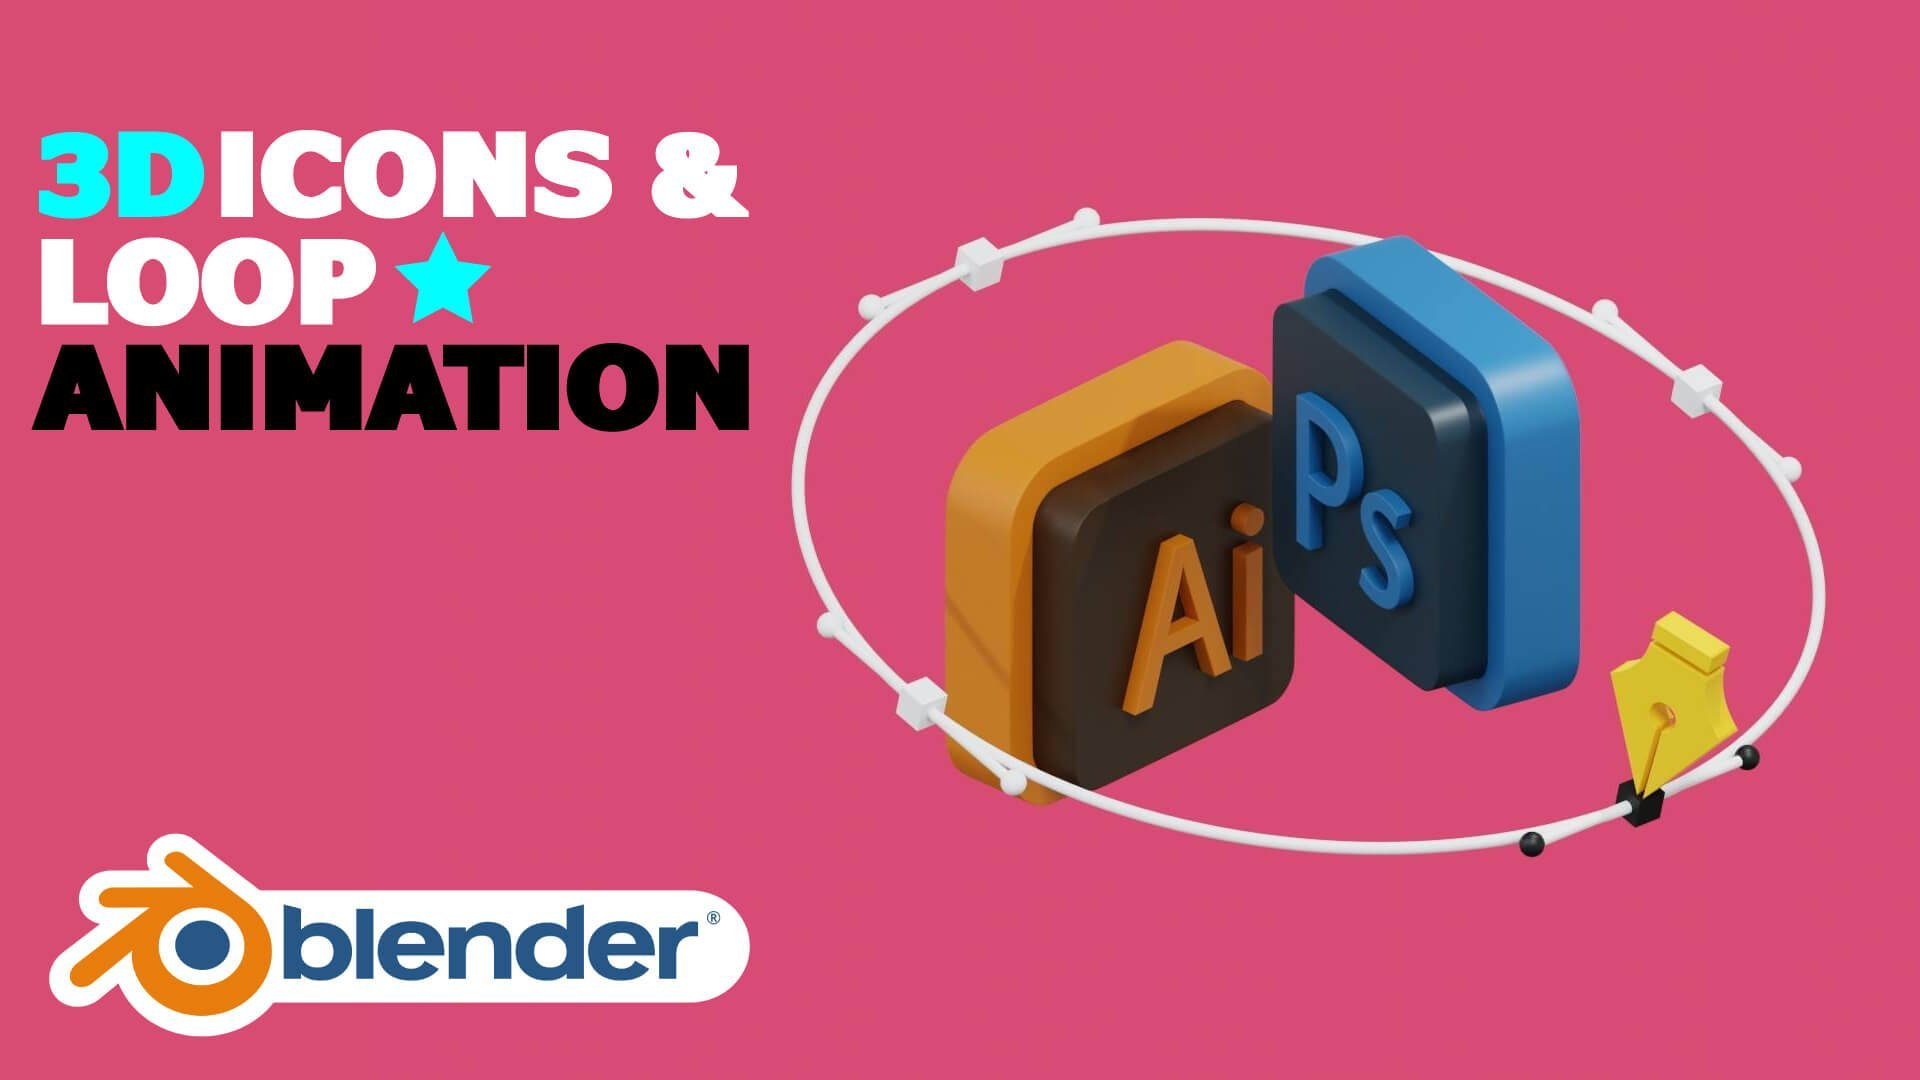 Make A Loop Animation With A 3D Icons Using Blender